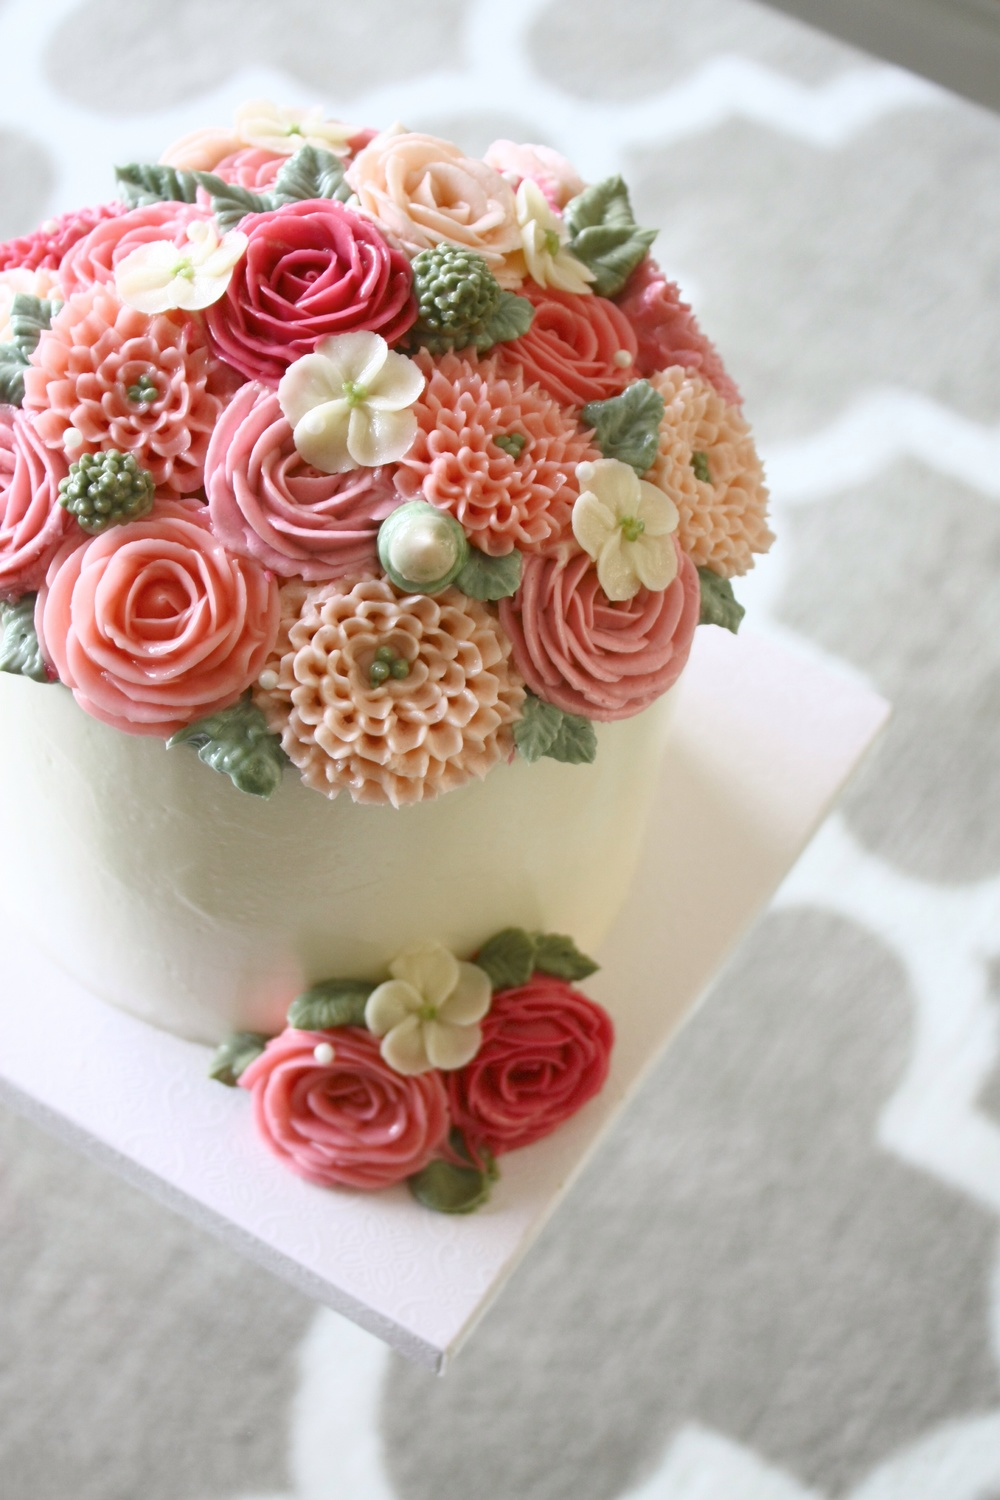 Cake Decorating Cream Flowers : Mother s Day buttercream flower cake   Eat Cake Be Merry ...